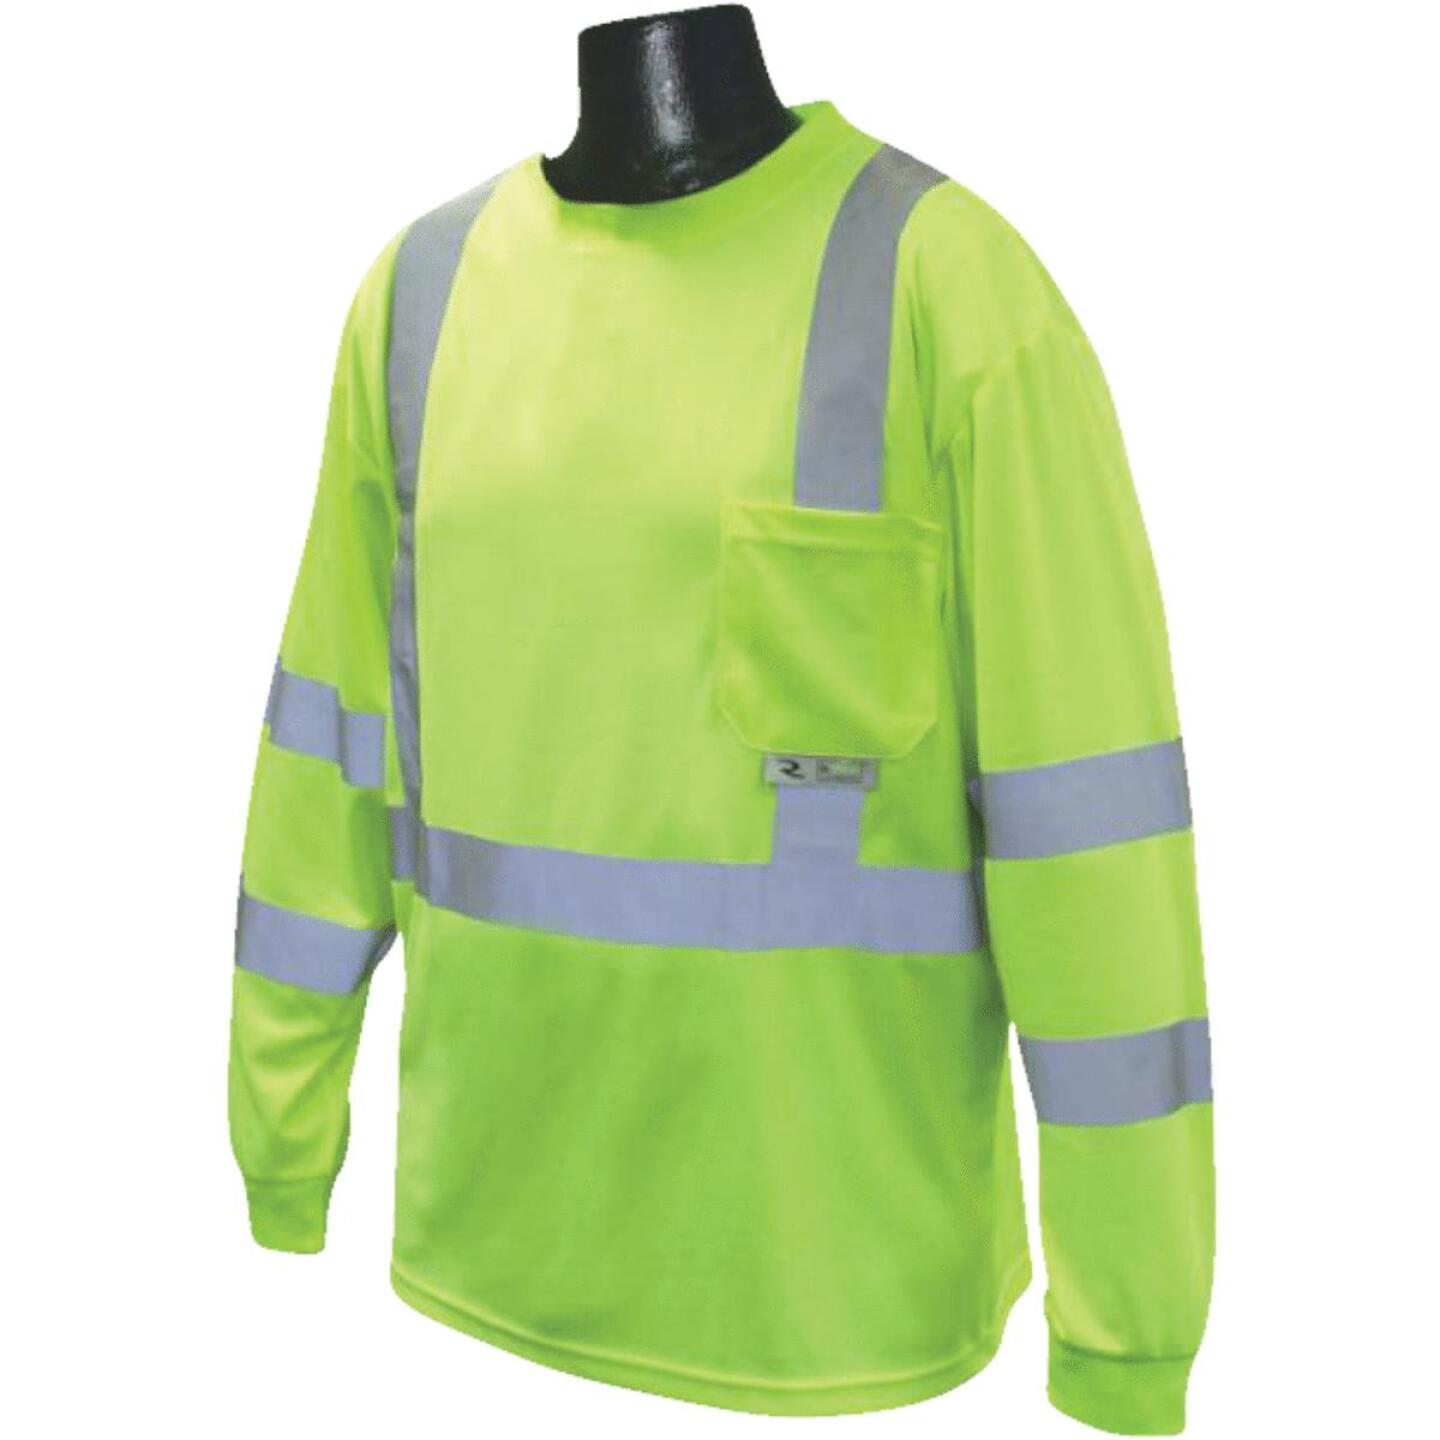 Radians Rad Wear ANSI Class 3 Hi Vis Green Safety T-Shirt XL Image 1